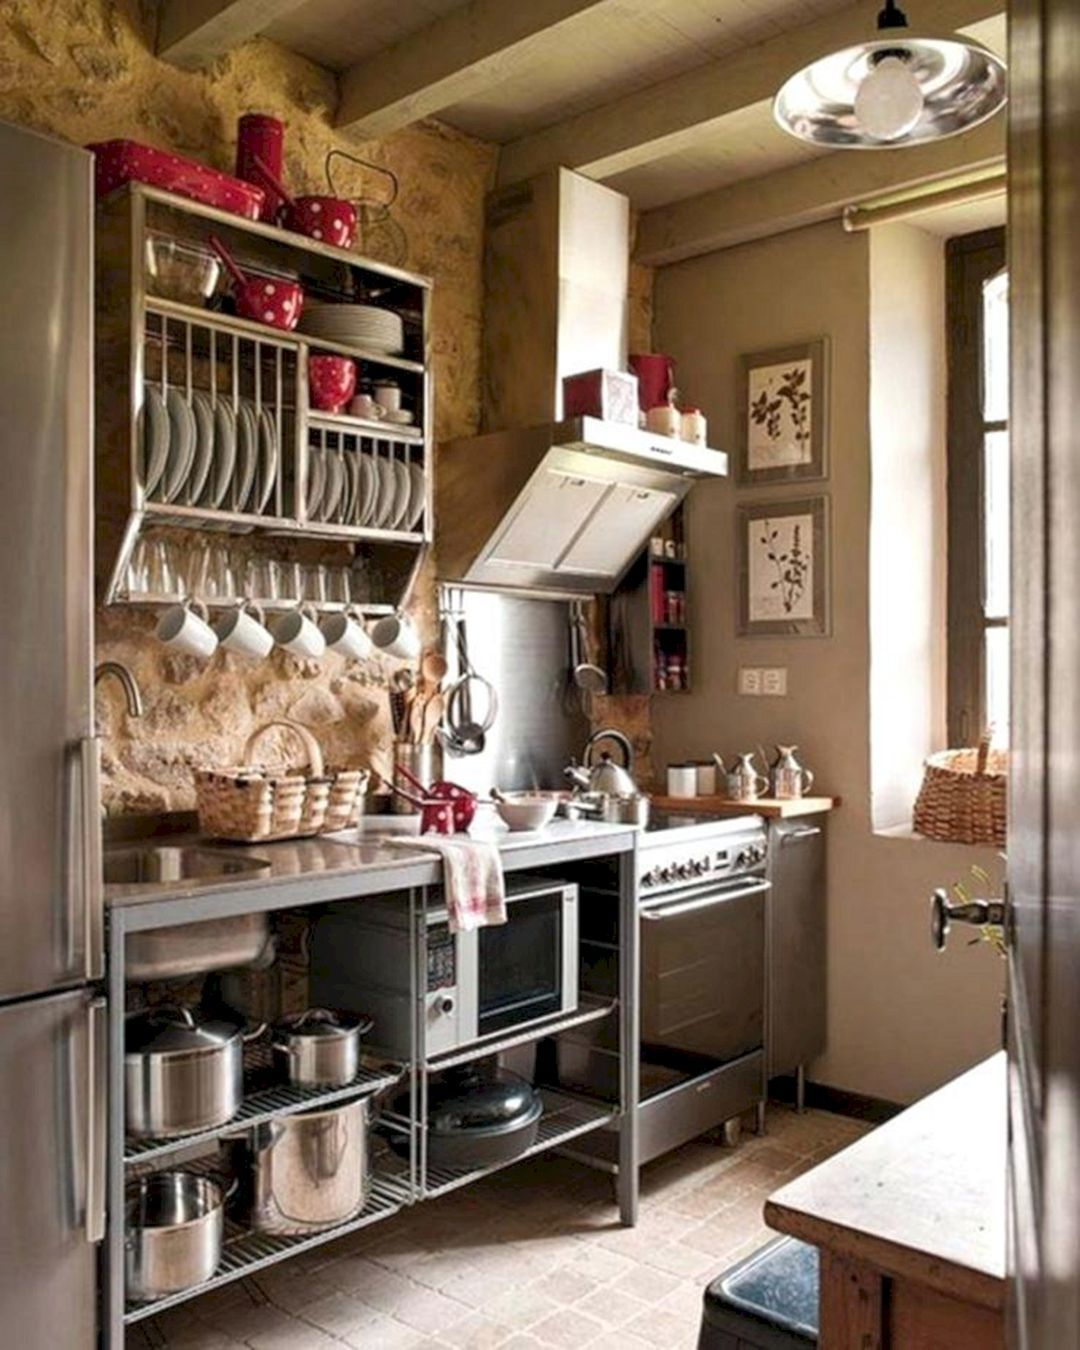 21 Japanese Kitchen Design That Makes You Amazed Freshouz Com Small Rustic Kitchens Tiny House Kitchen Rustic Industrial Kitchen